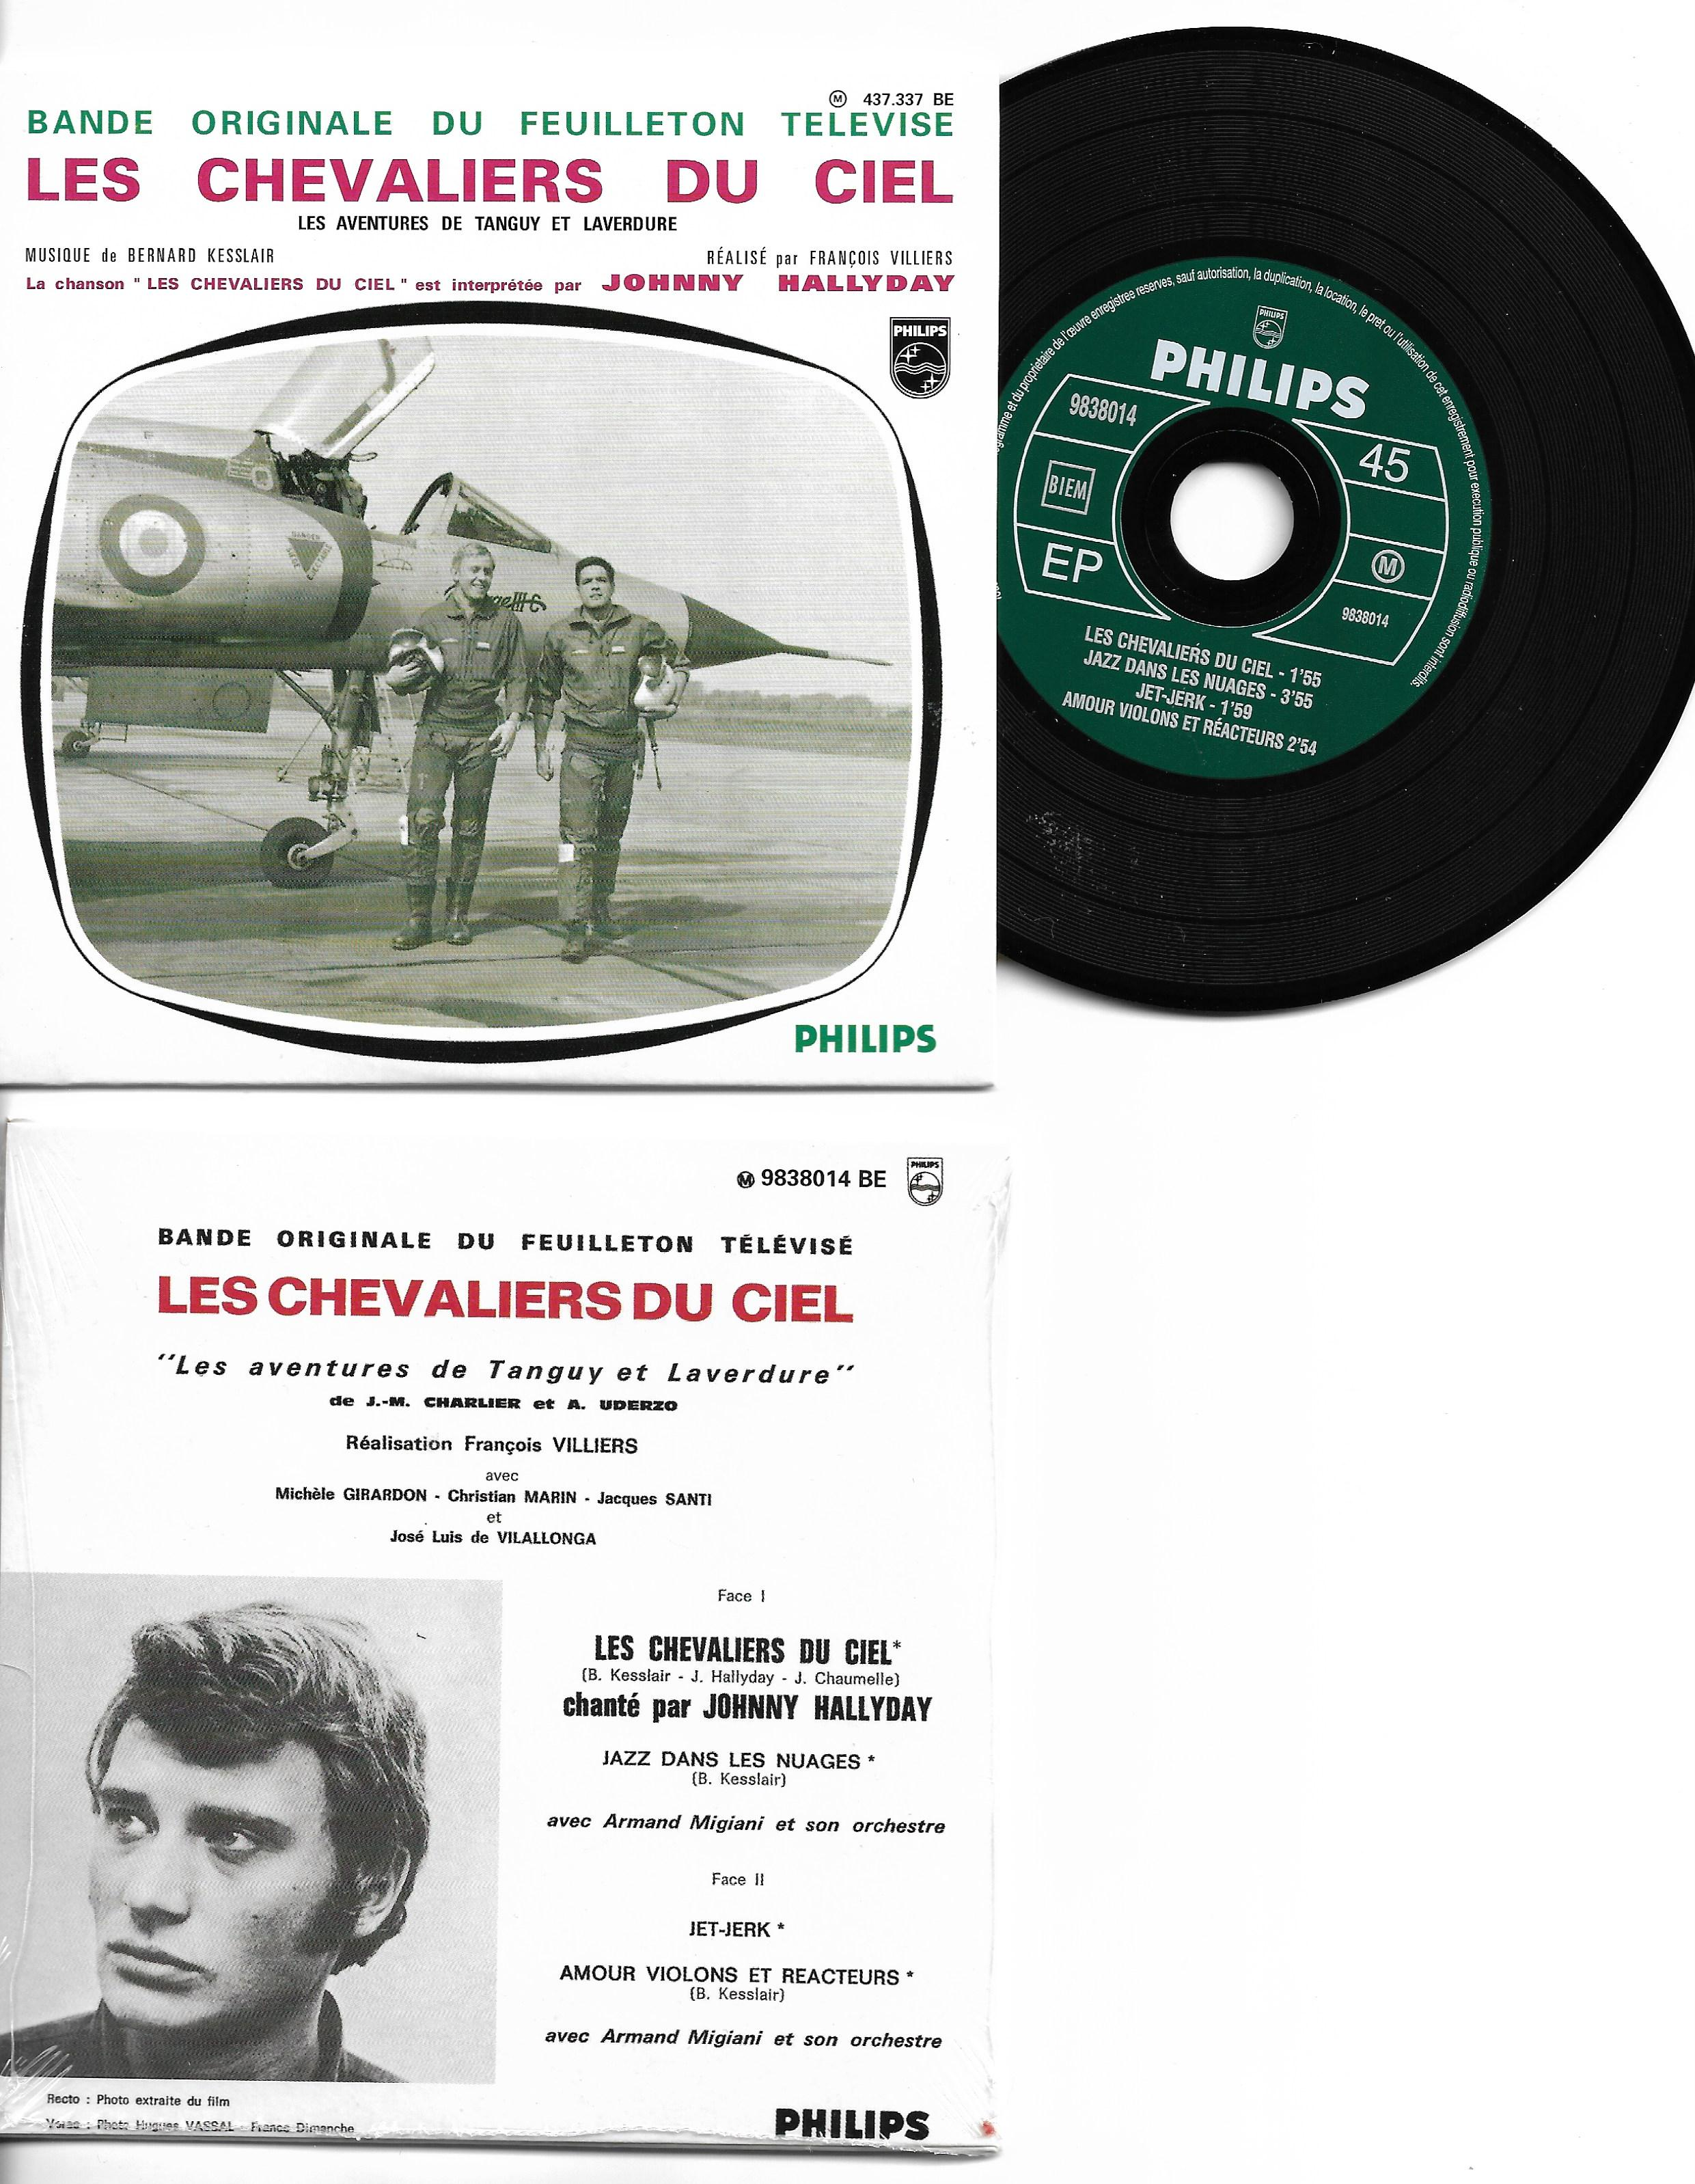 JOHNNY HALLYDAY - SOUNDTRACK : LES CHEVALIERS DU C - Les chevaliers du ciel - ltd ed CARD SLEEVE 4-track - CD single